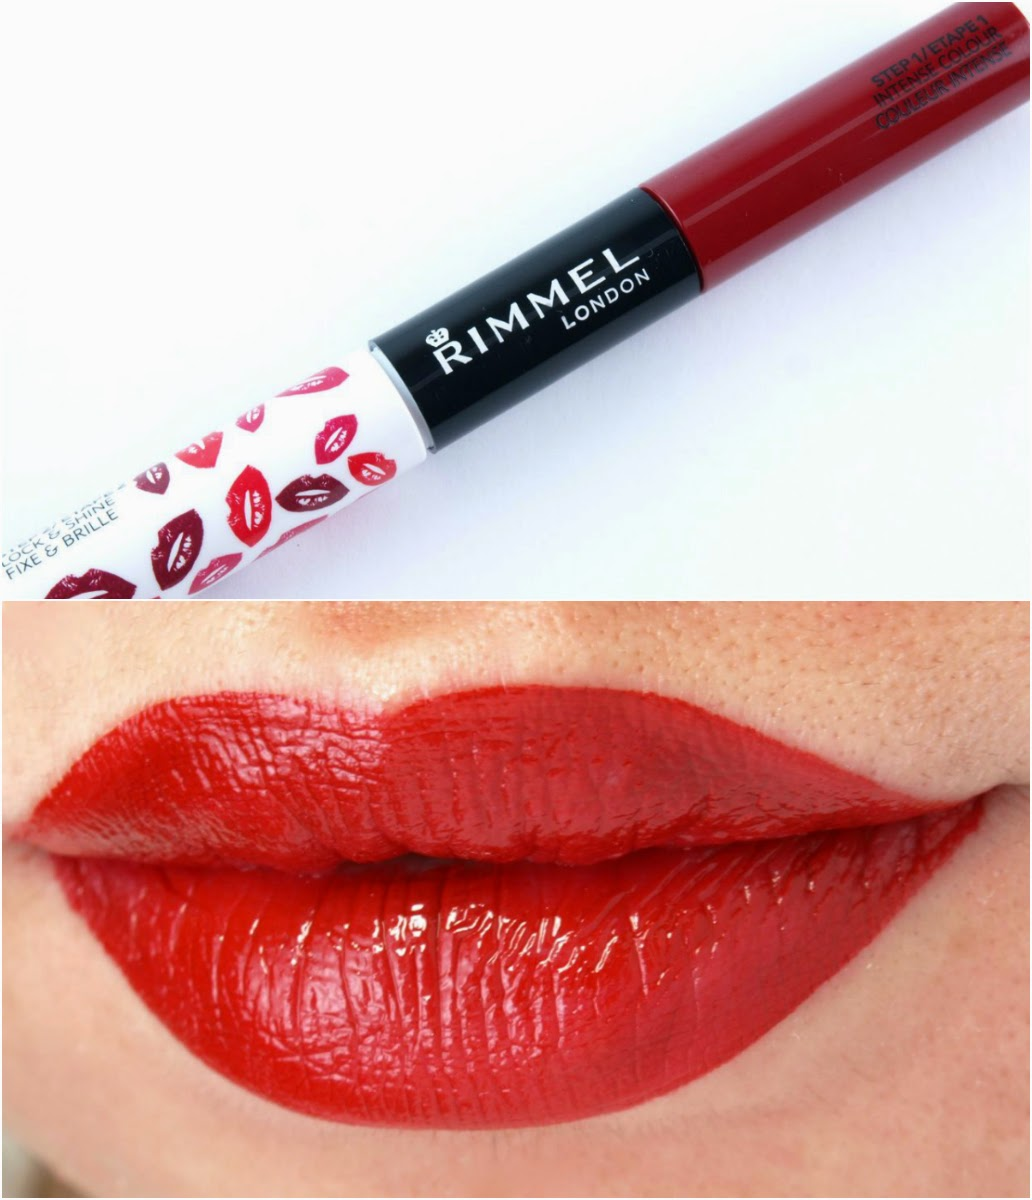 Rimmel Provocalips 16Hr Kiss Proof Lip Color: Review and Swatches Play with Fire